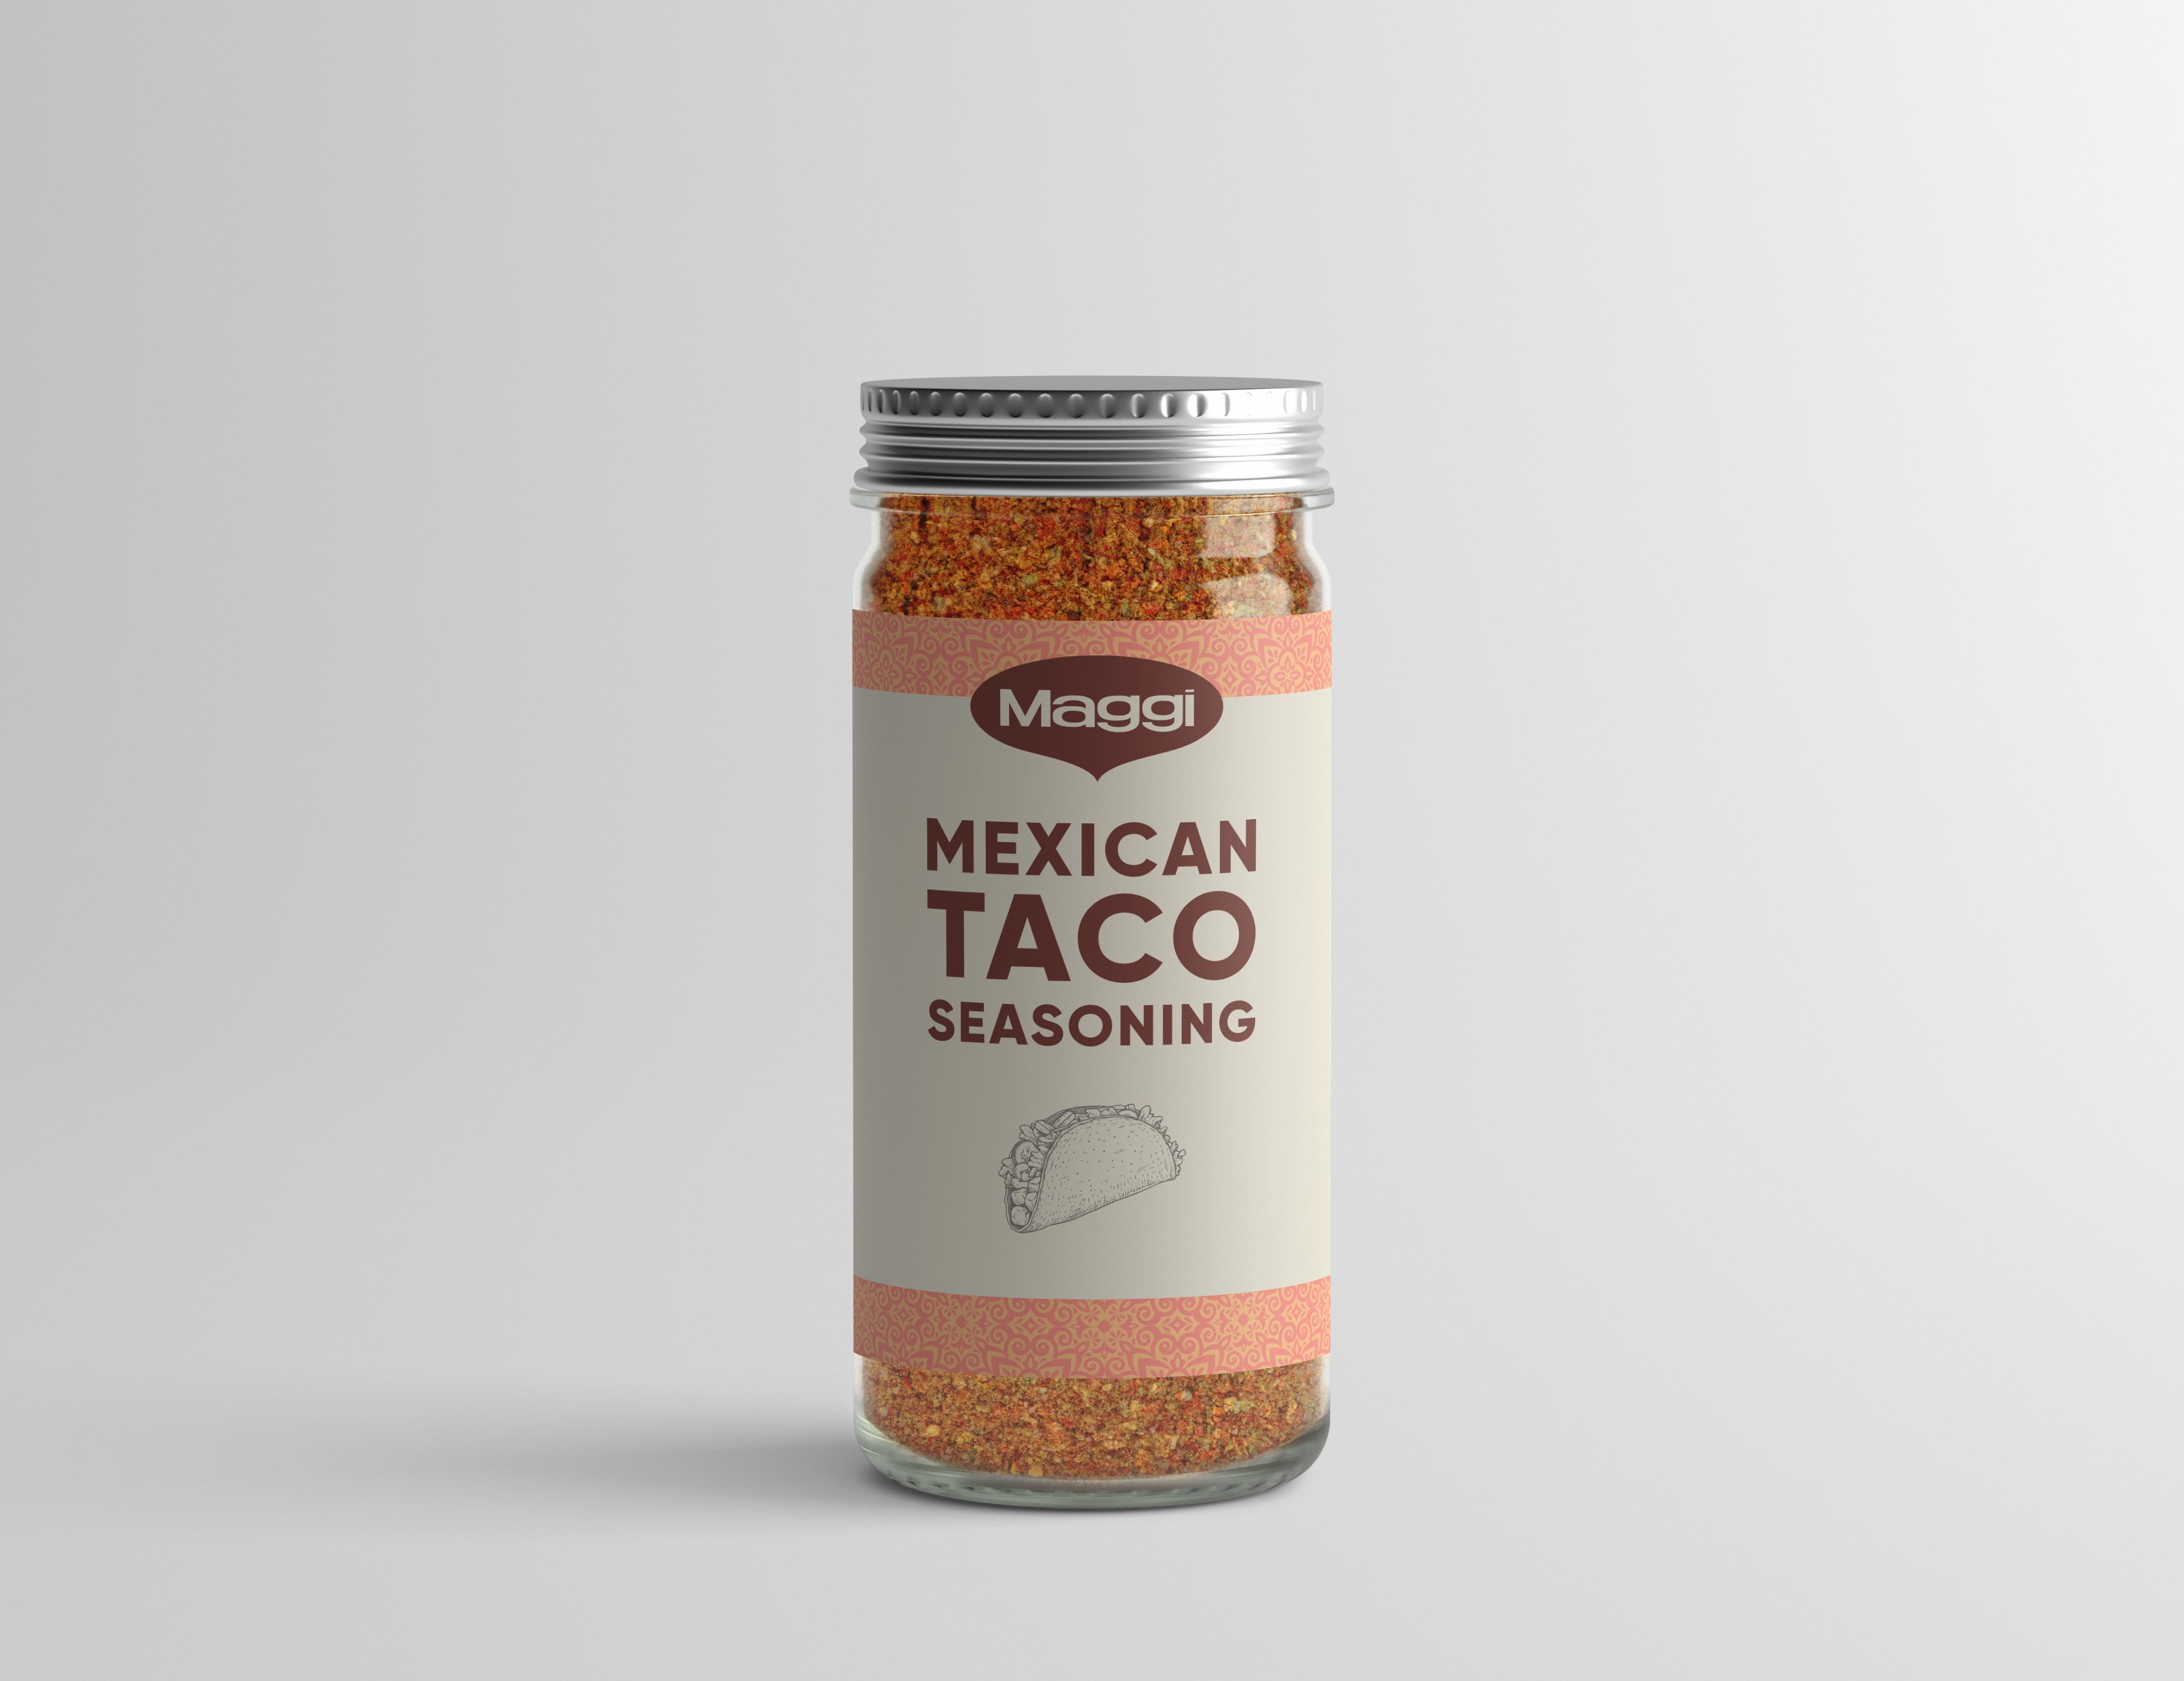 A spice bottled labeled Mexican Taco Seasoning